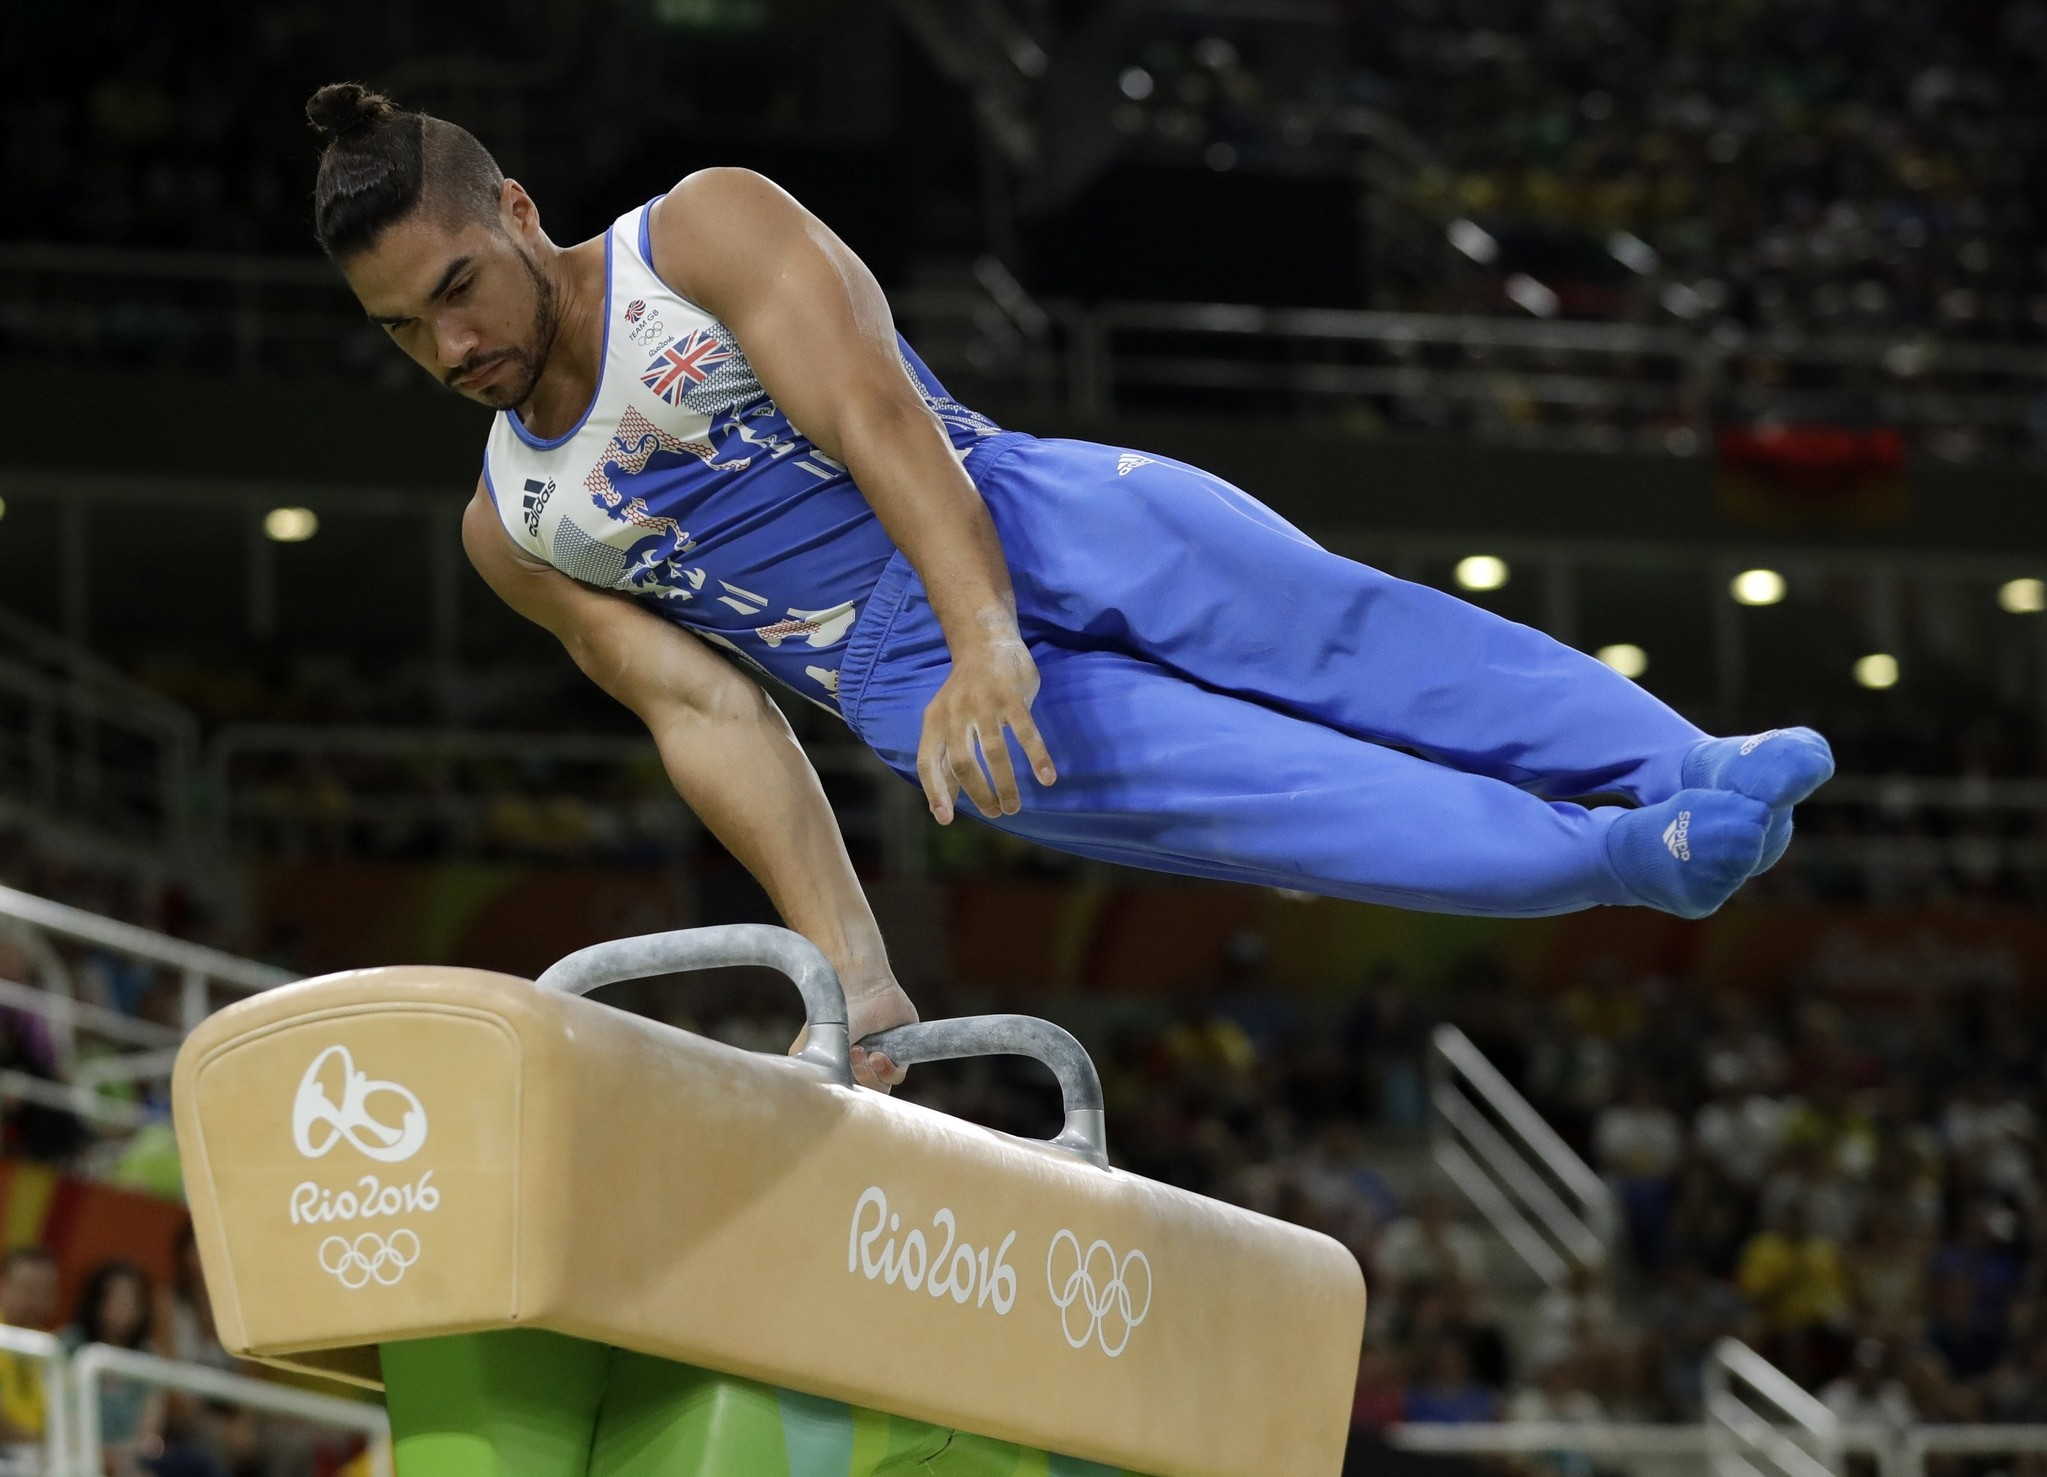 This is an Aug. 14, 2016 file photo of Britain's Louis Smith as he performs on the pommel horse during the artistic gymnastics men's apparatus final at the 2016 Olympics in Rio de Janeiro, Brazil. (AP Photo)